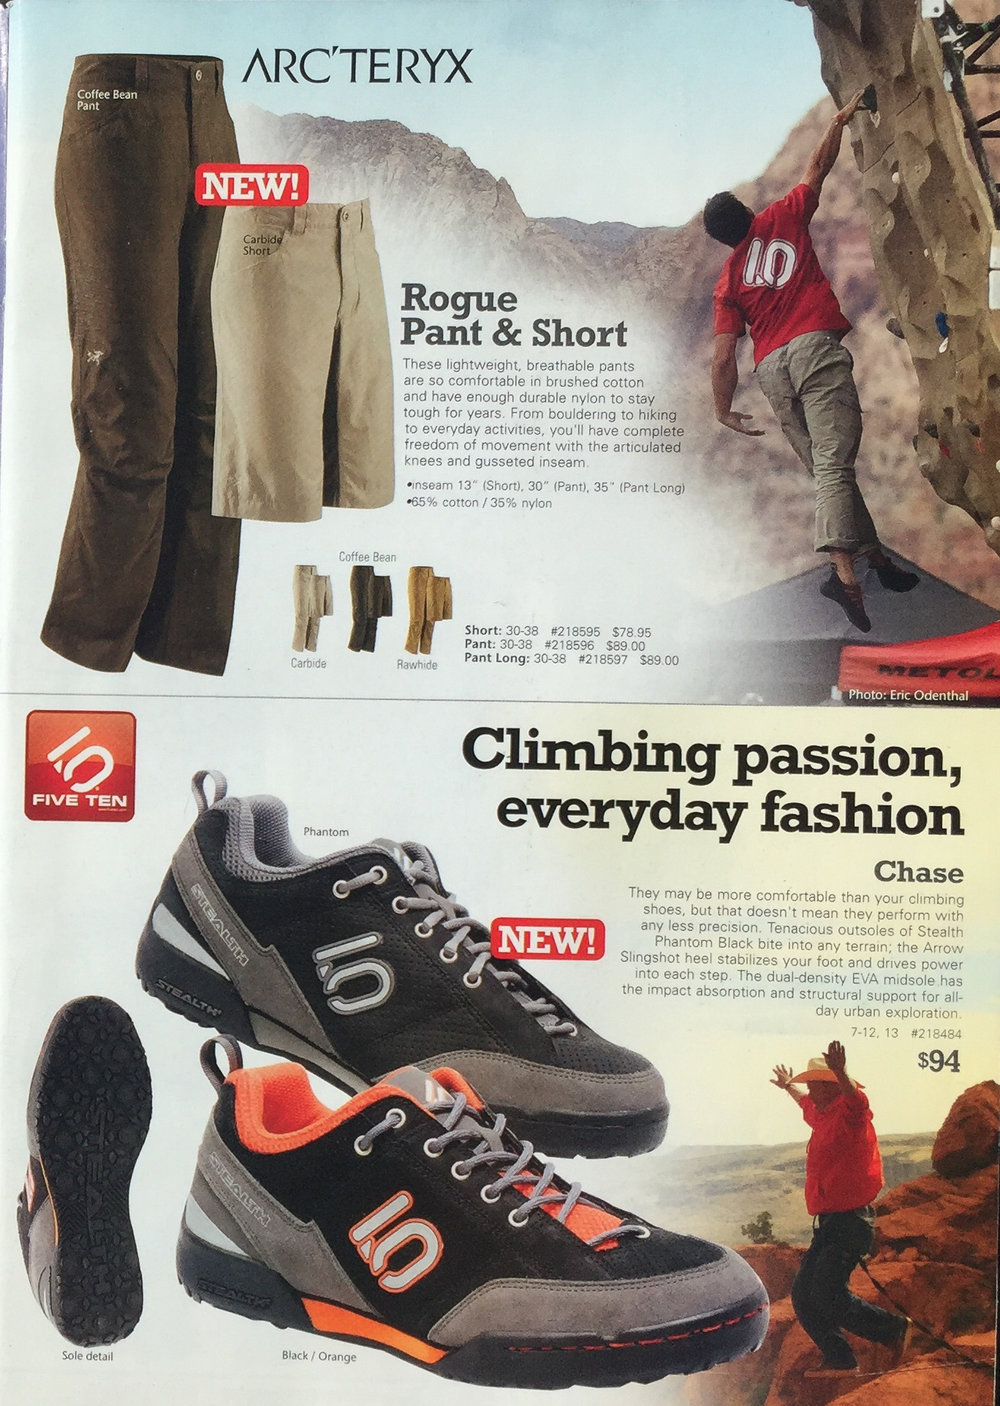 MOUNTAIN GEAR CATALOG  RED ROCK RENDEZVOUS | LAS VEGAS   IMAGE | ERIC ODENTHAL